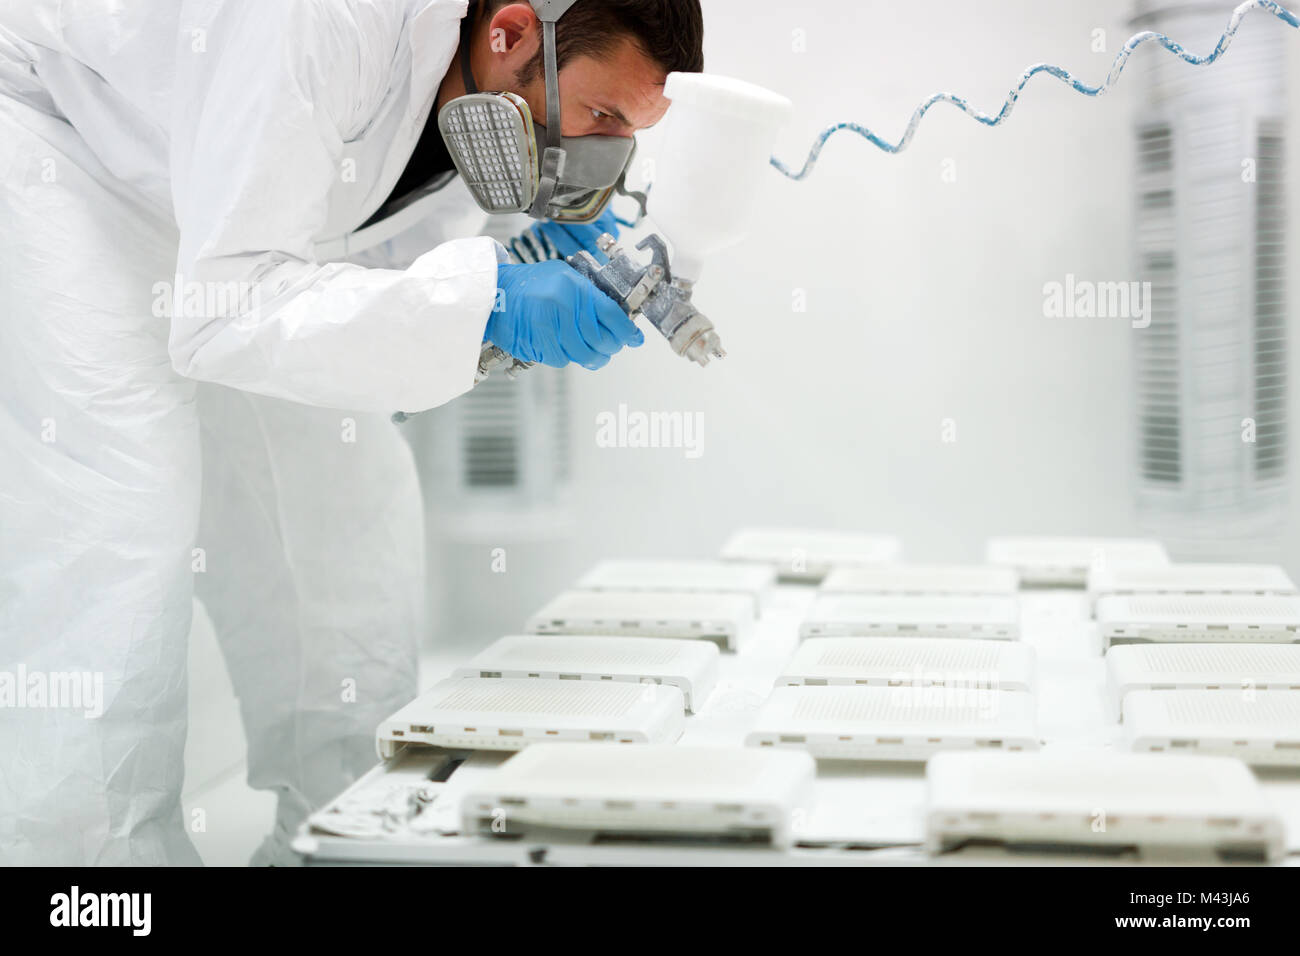 Painter using airbrush to paint wearing protective clothing - Stock Image